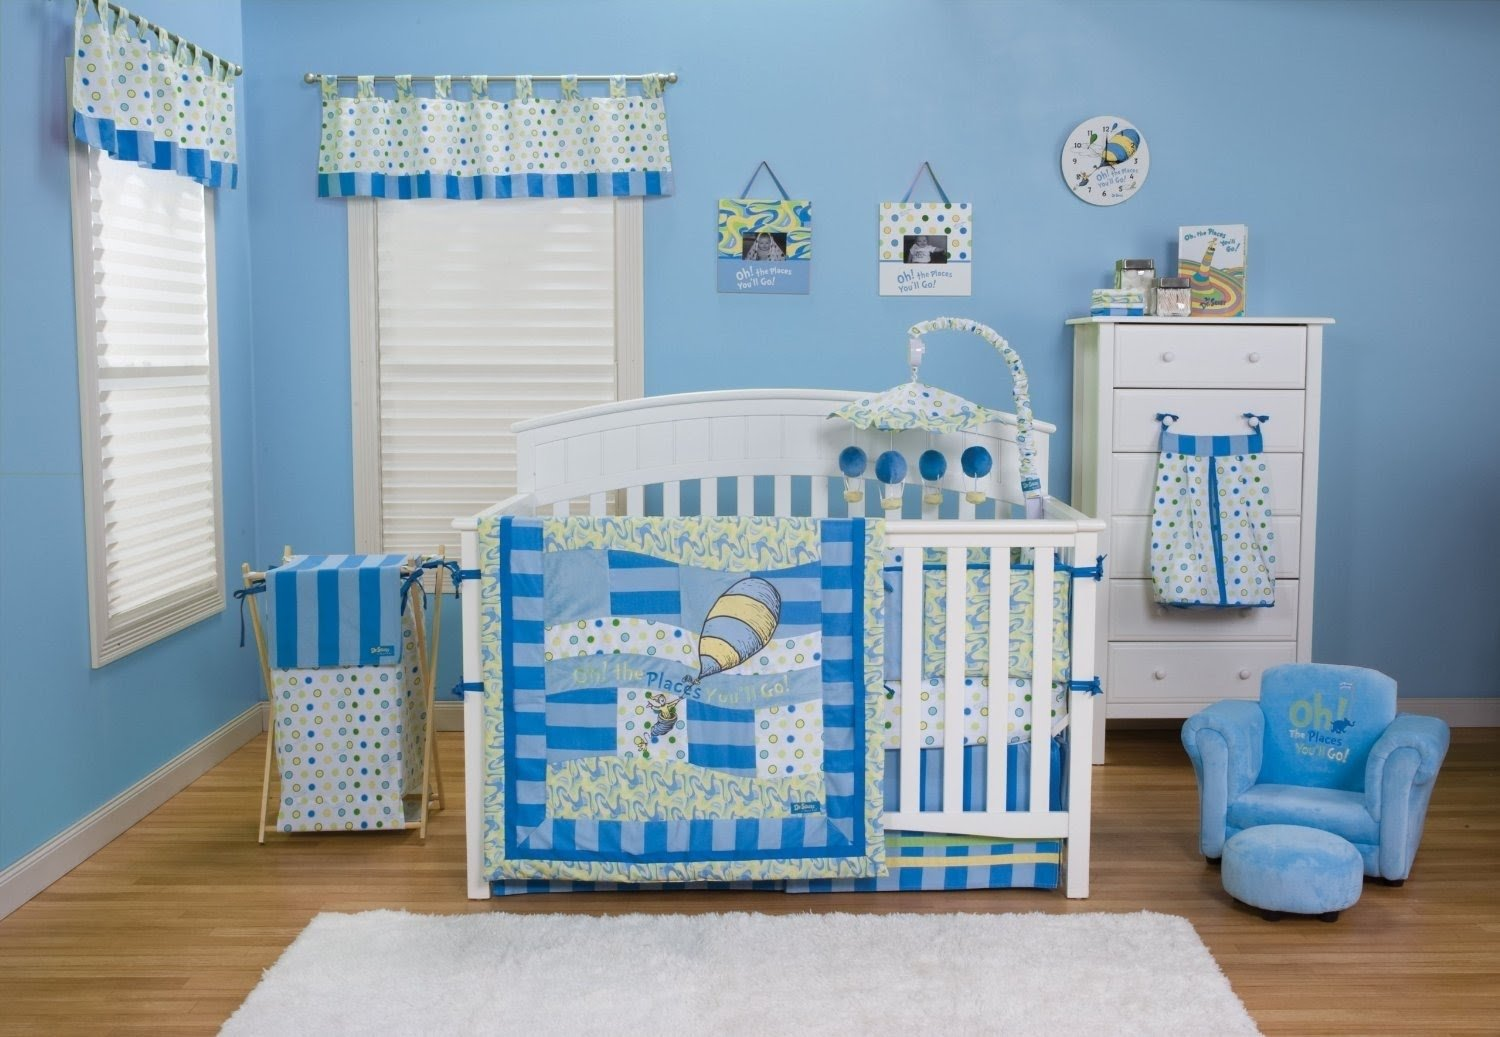 10 Lovely Baby Boy Room Decorating Ideas baby nursery ideas 26 tremendous baby boy themes for nursery baby 1 2020